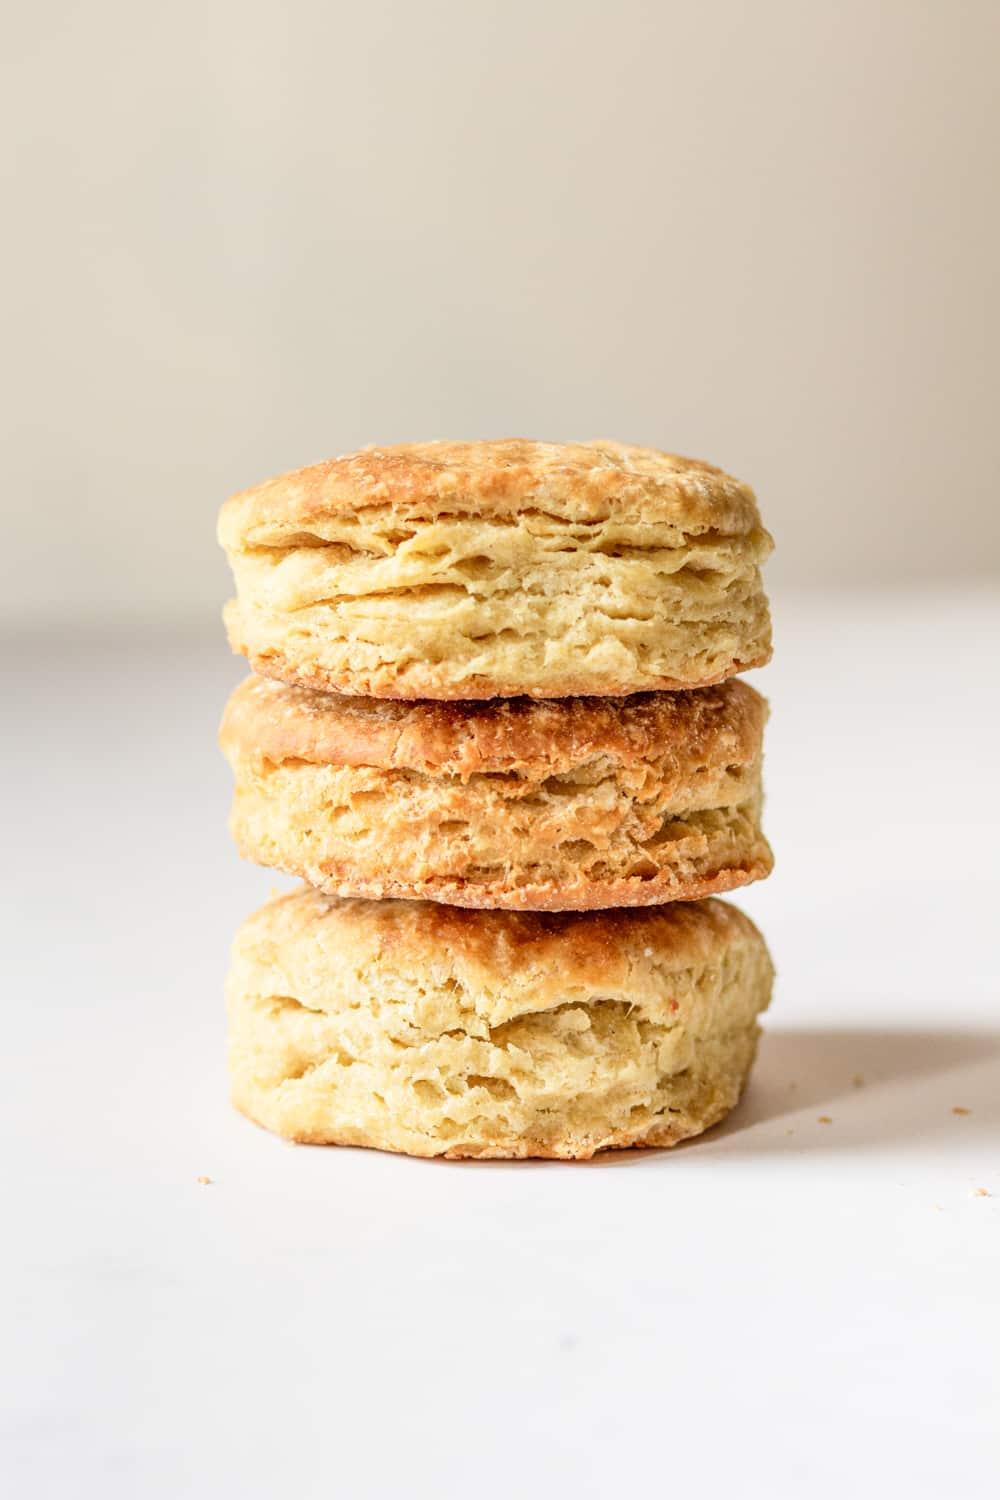 Three vegan biscuits stacked on top of one another. The biscuits are on top of a white counter.